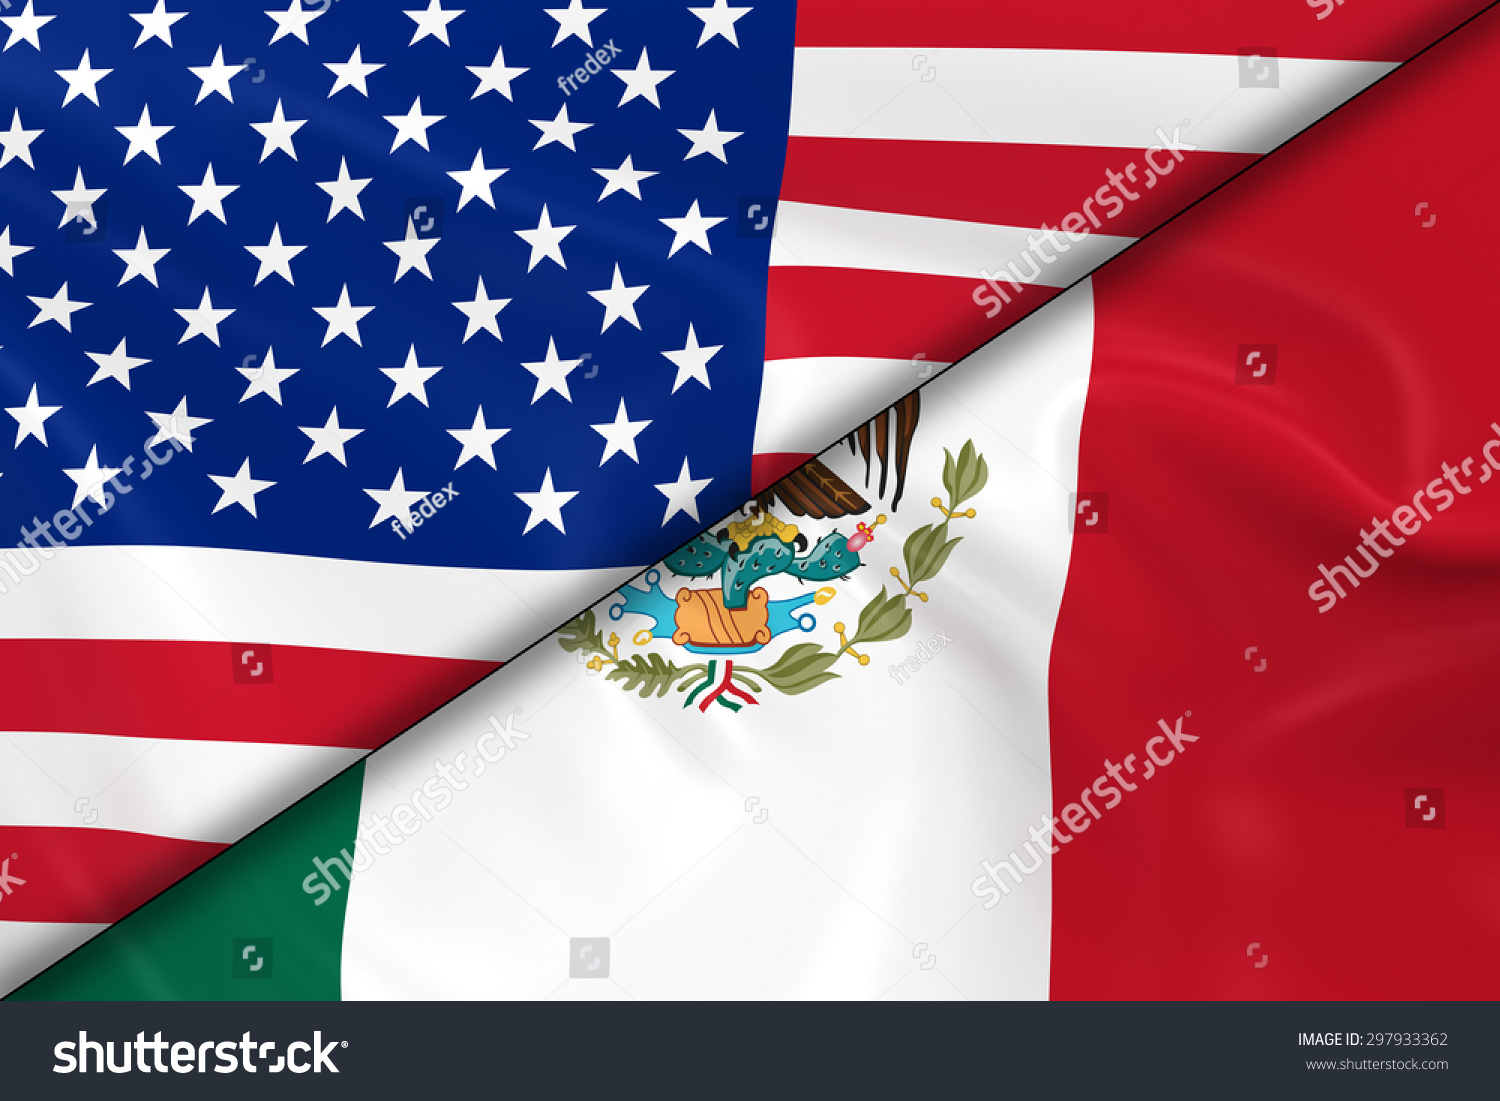 The background of the united mexican states or mexico